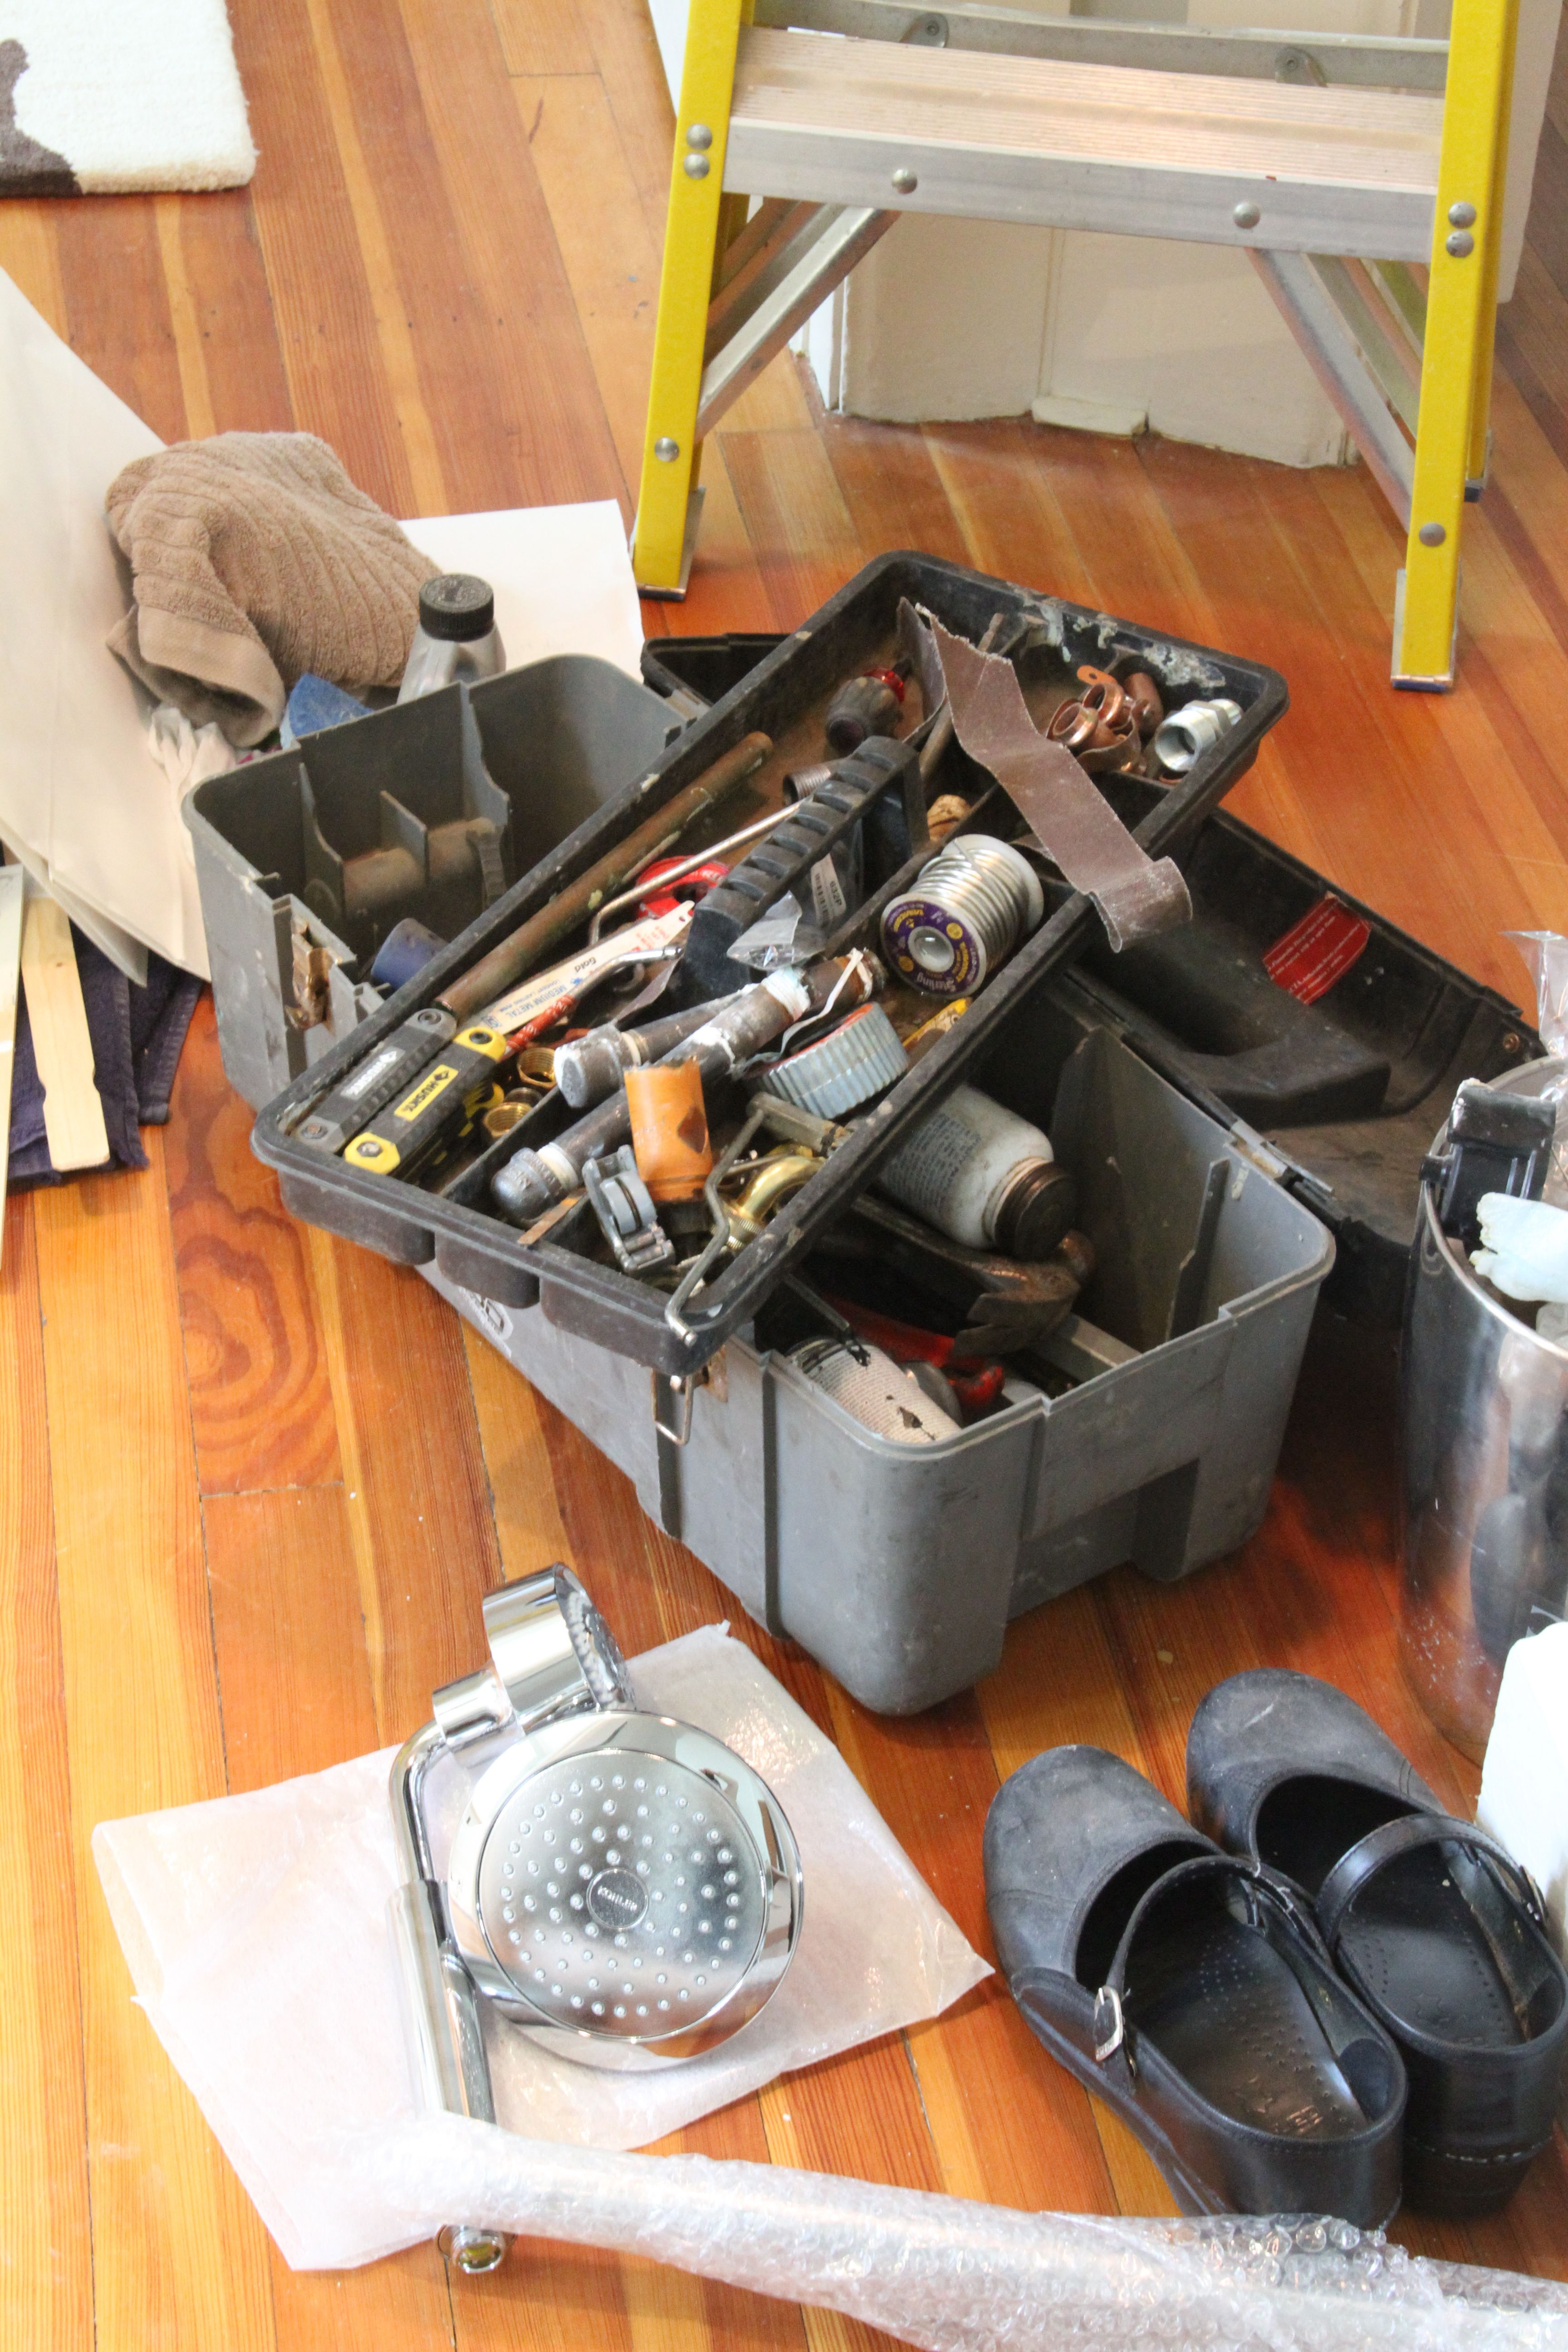 Dave needs a new tool box. And those are my shoes, not his.